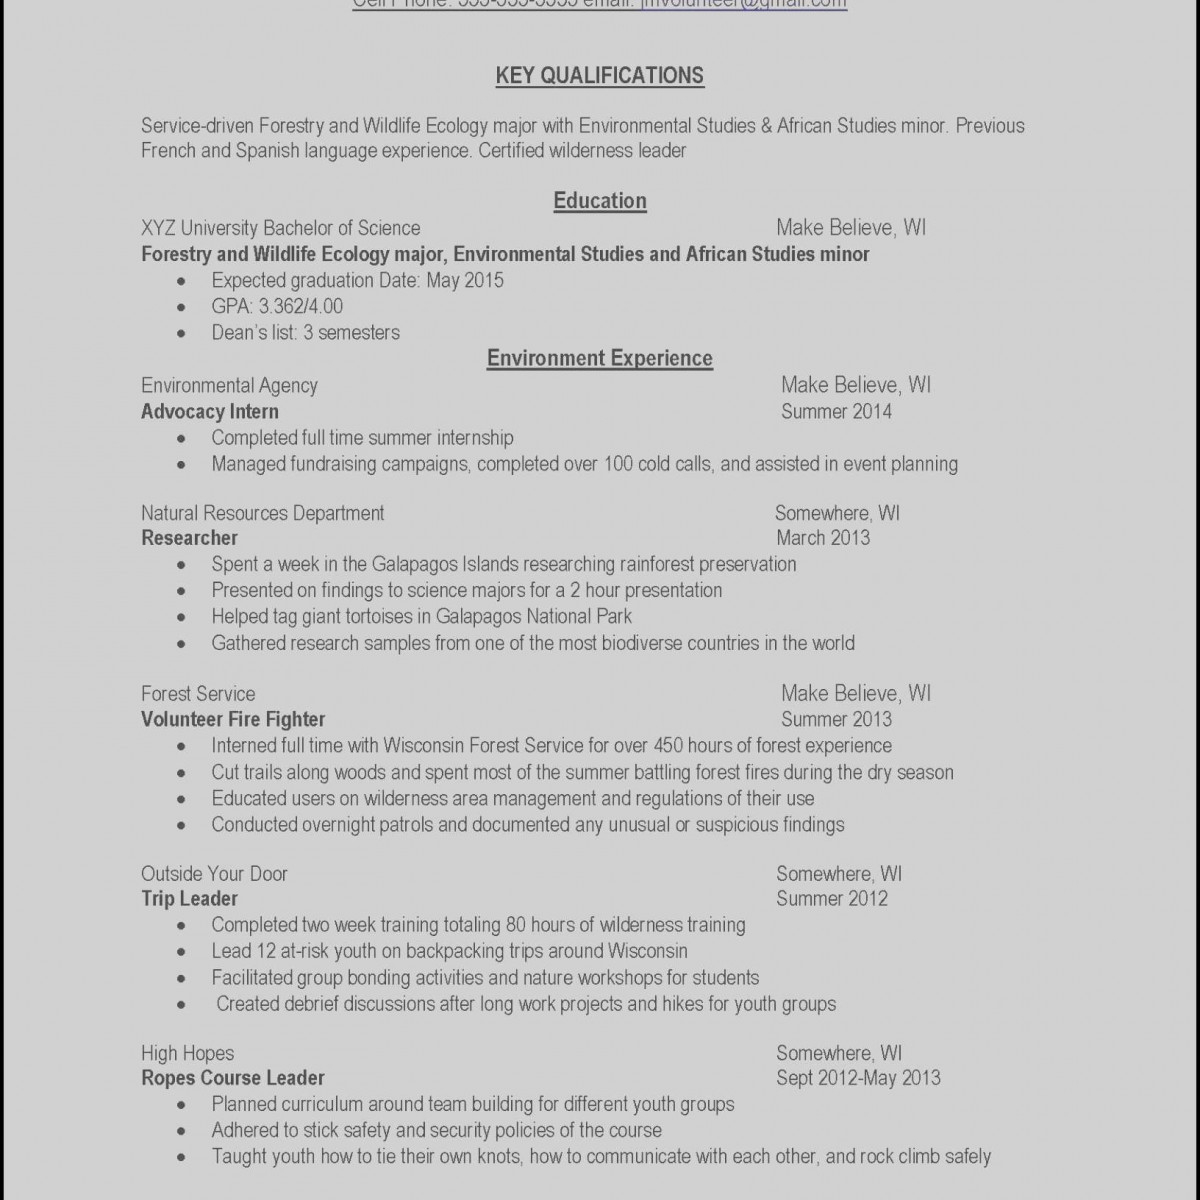 Build A Resume Free - Free Resumes Line Beautiful Make Resume Line Free Awesome Examples